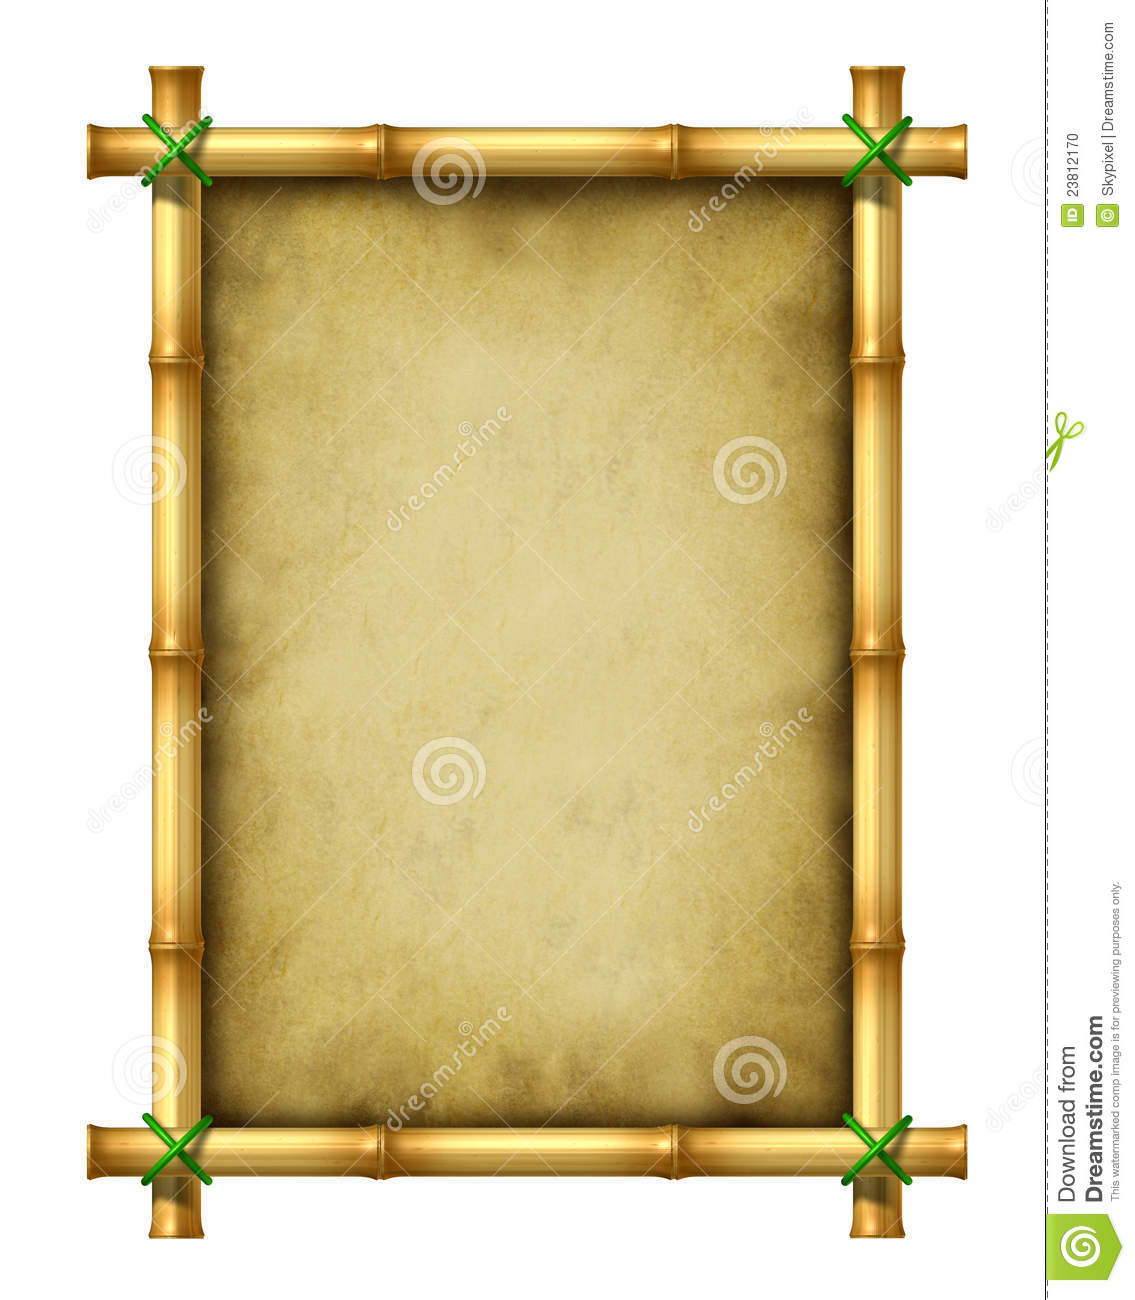 bamboo wood frame - photo #41